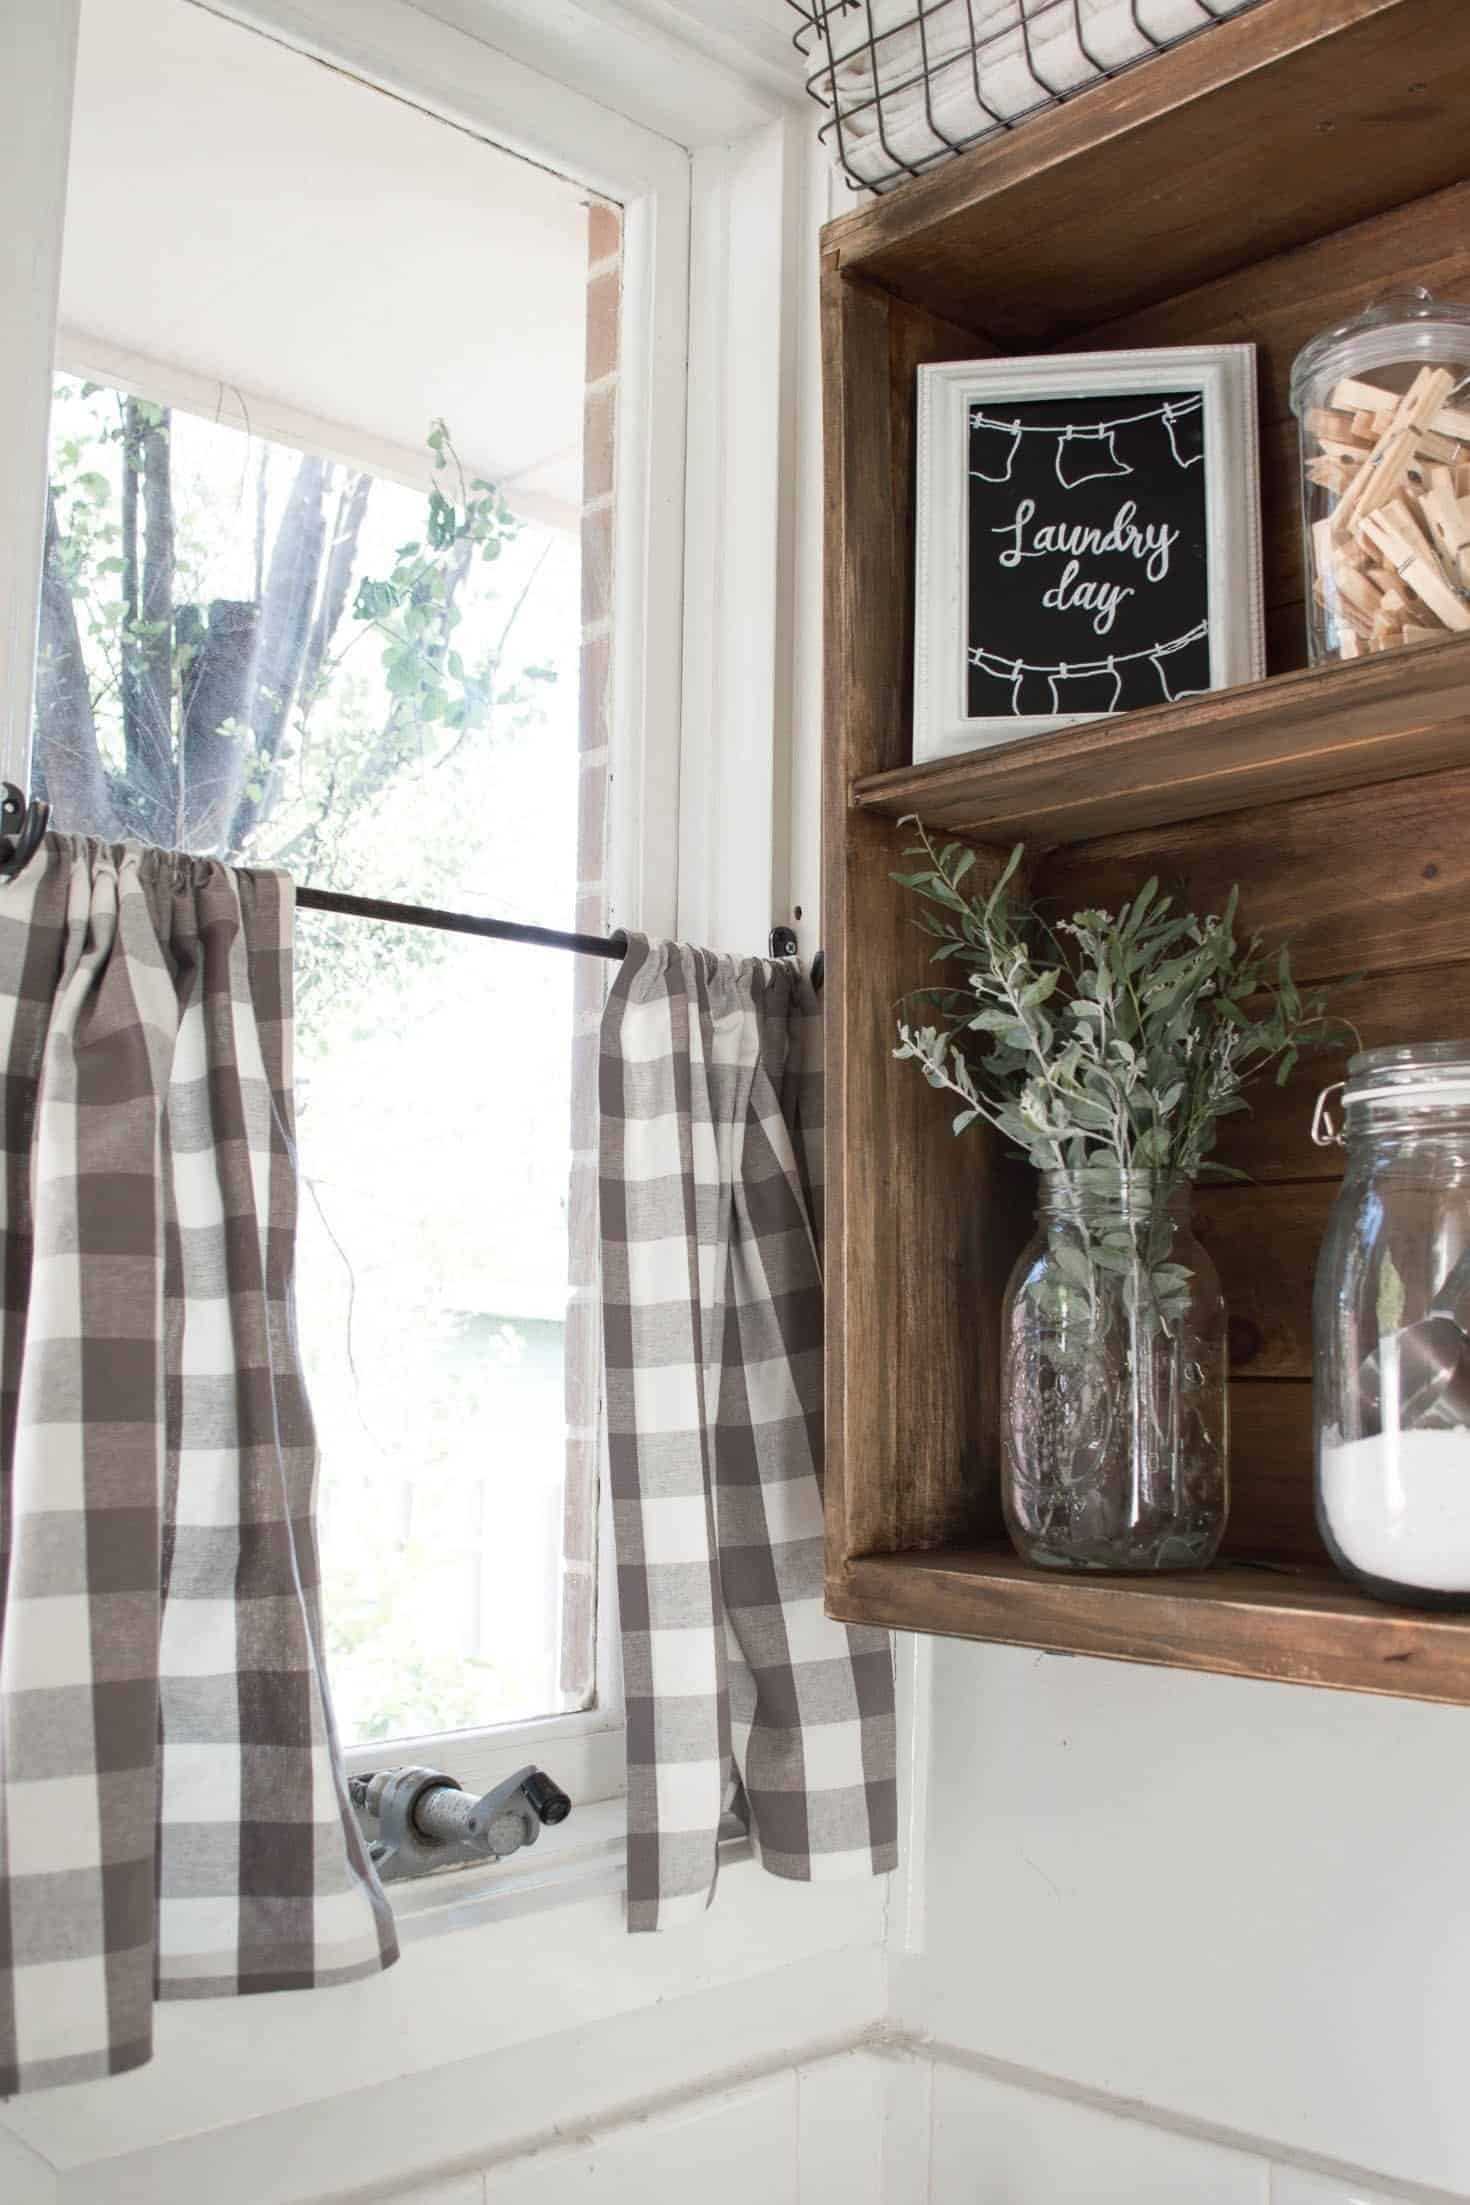 Quick and easy no-sew cafe curtains